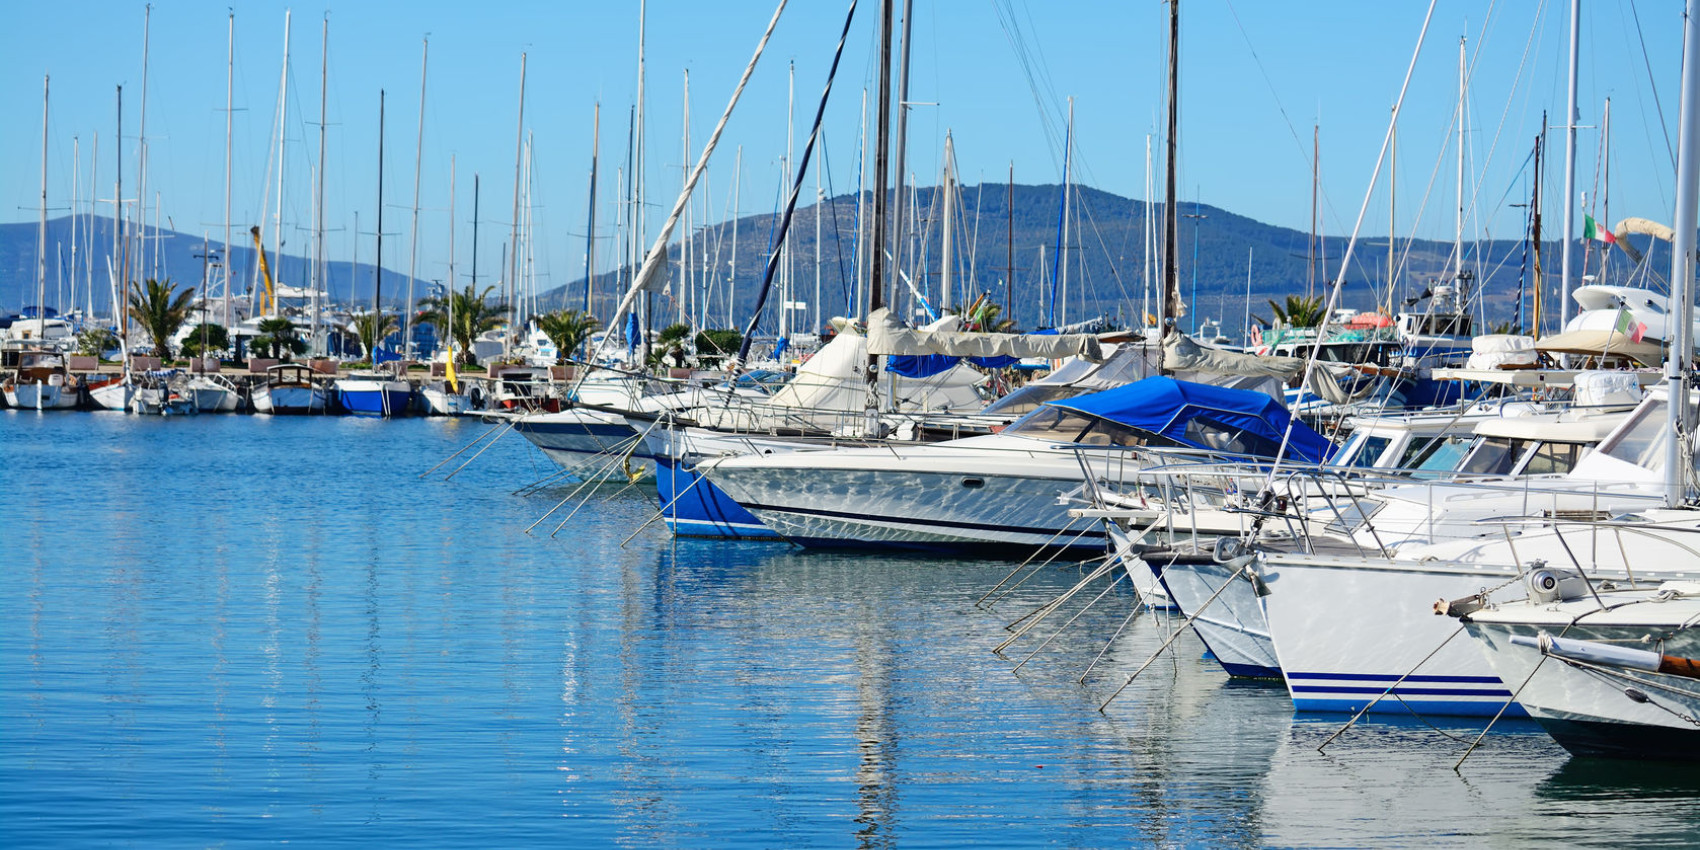 Boat Electricals - Marine Electrical Equipment